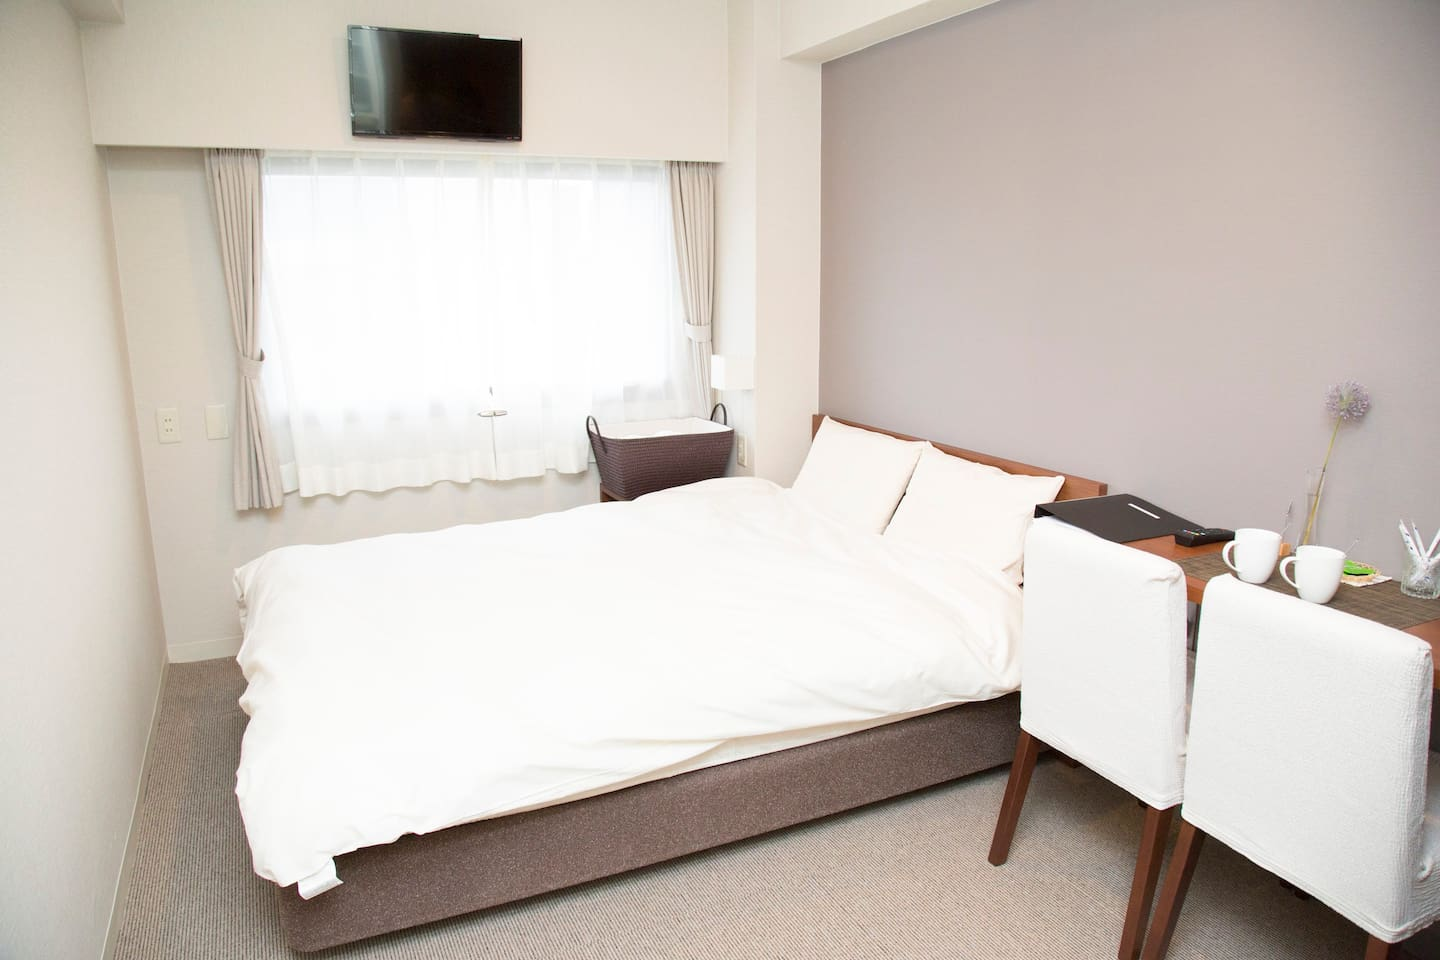 Bed: Double size (140cm wide)